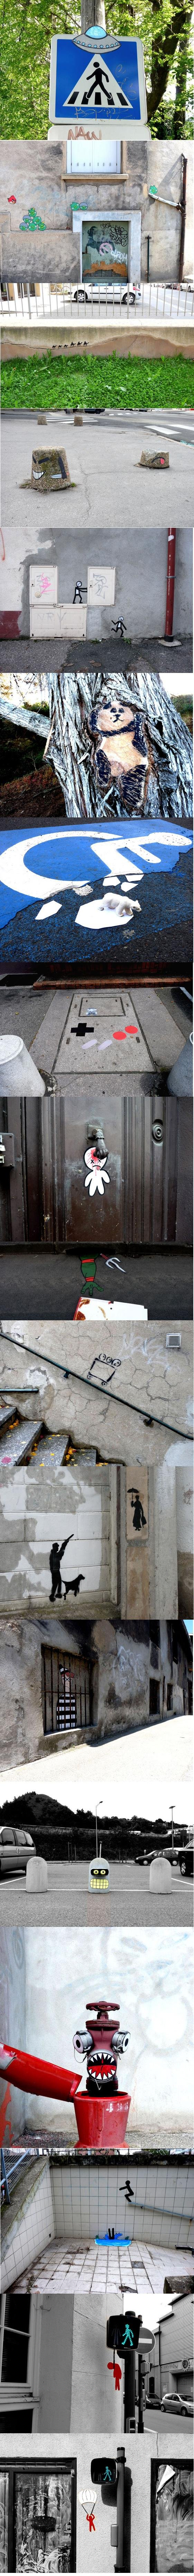 Urban art from arround the world.